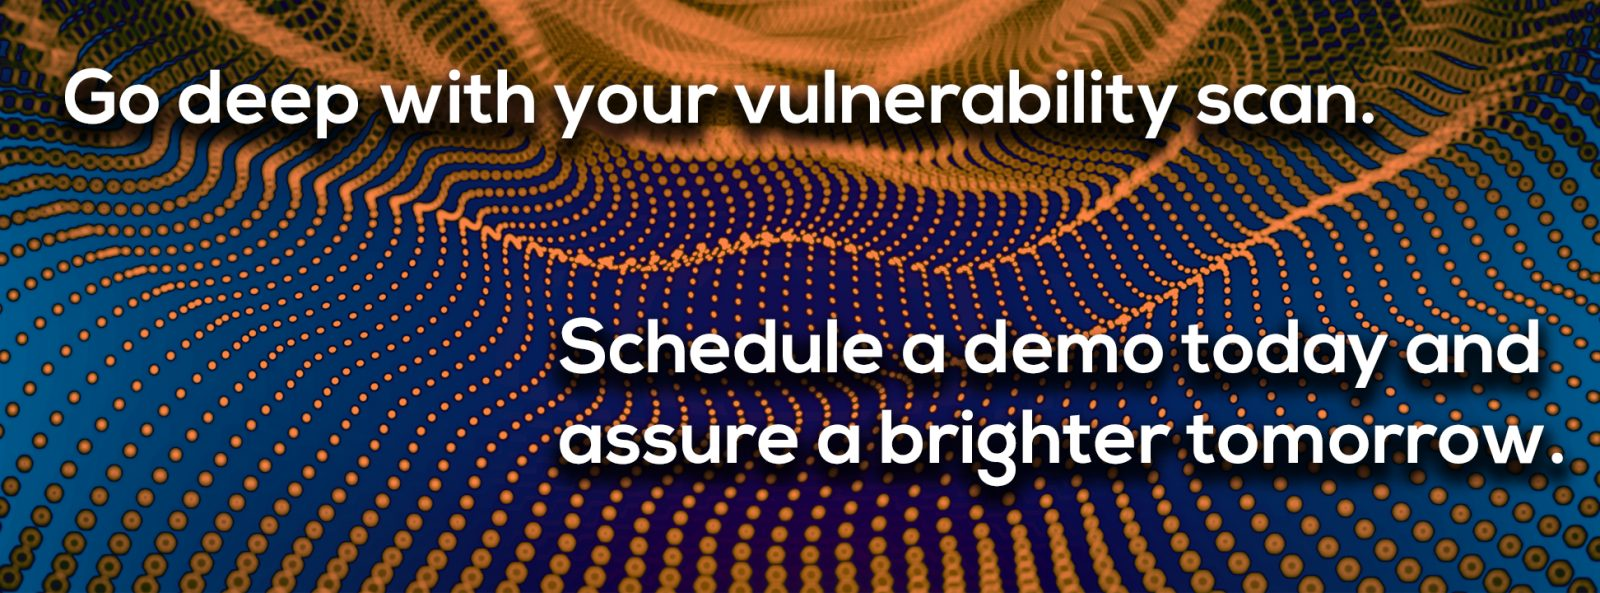 DKV Demo Banner - Go deep with your vulnerability scan. Schedule a demo today and assure a brighter tomorrow.